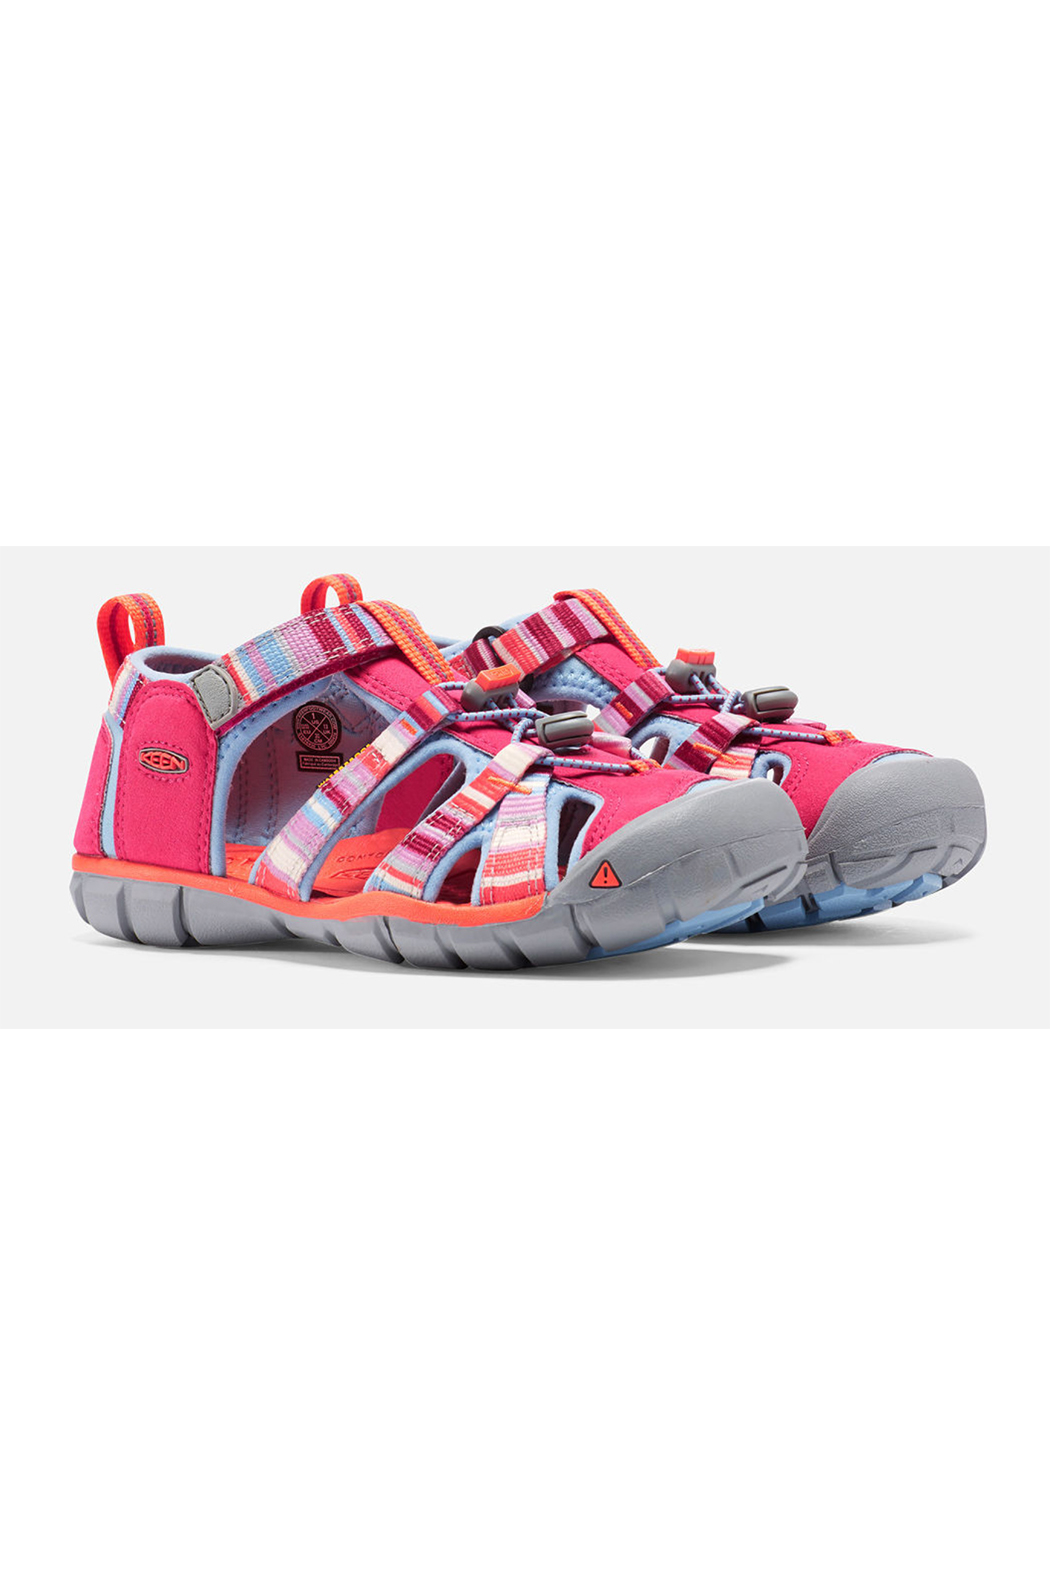 Keen Seacamp II CNX Sandal Tots - Front Full Image